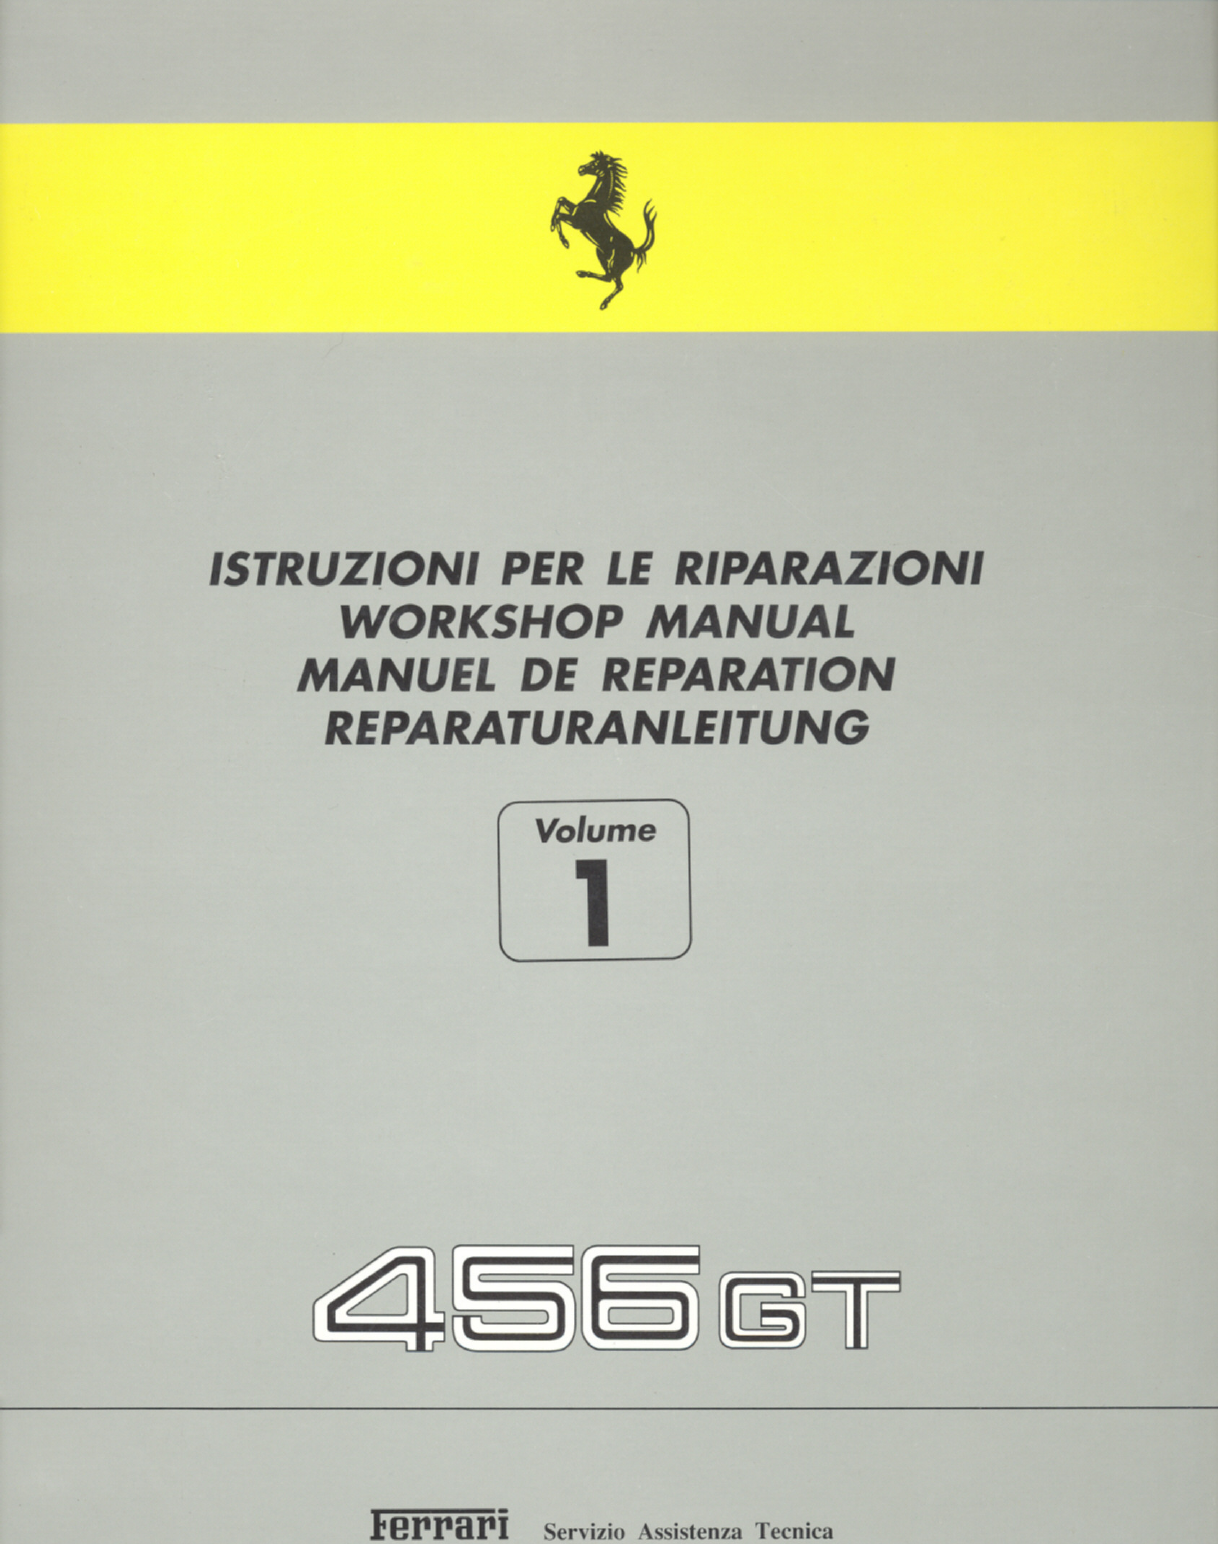 See our other Ferrari 456 Manuals: